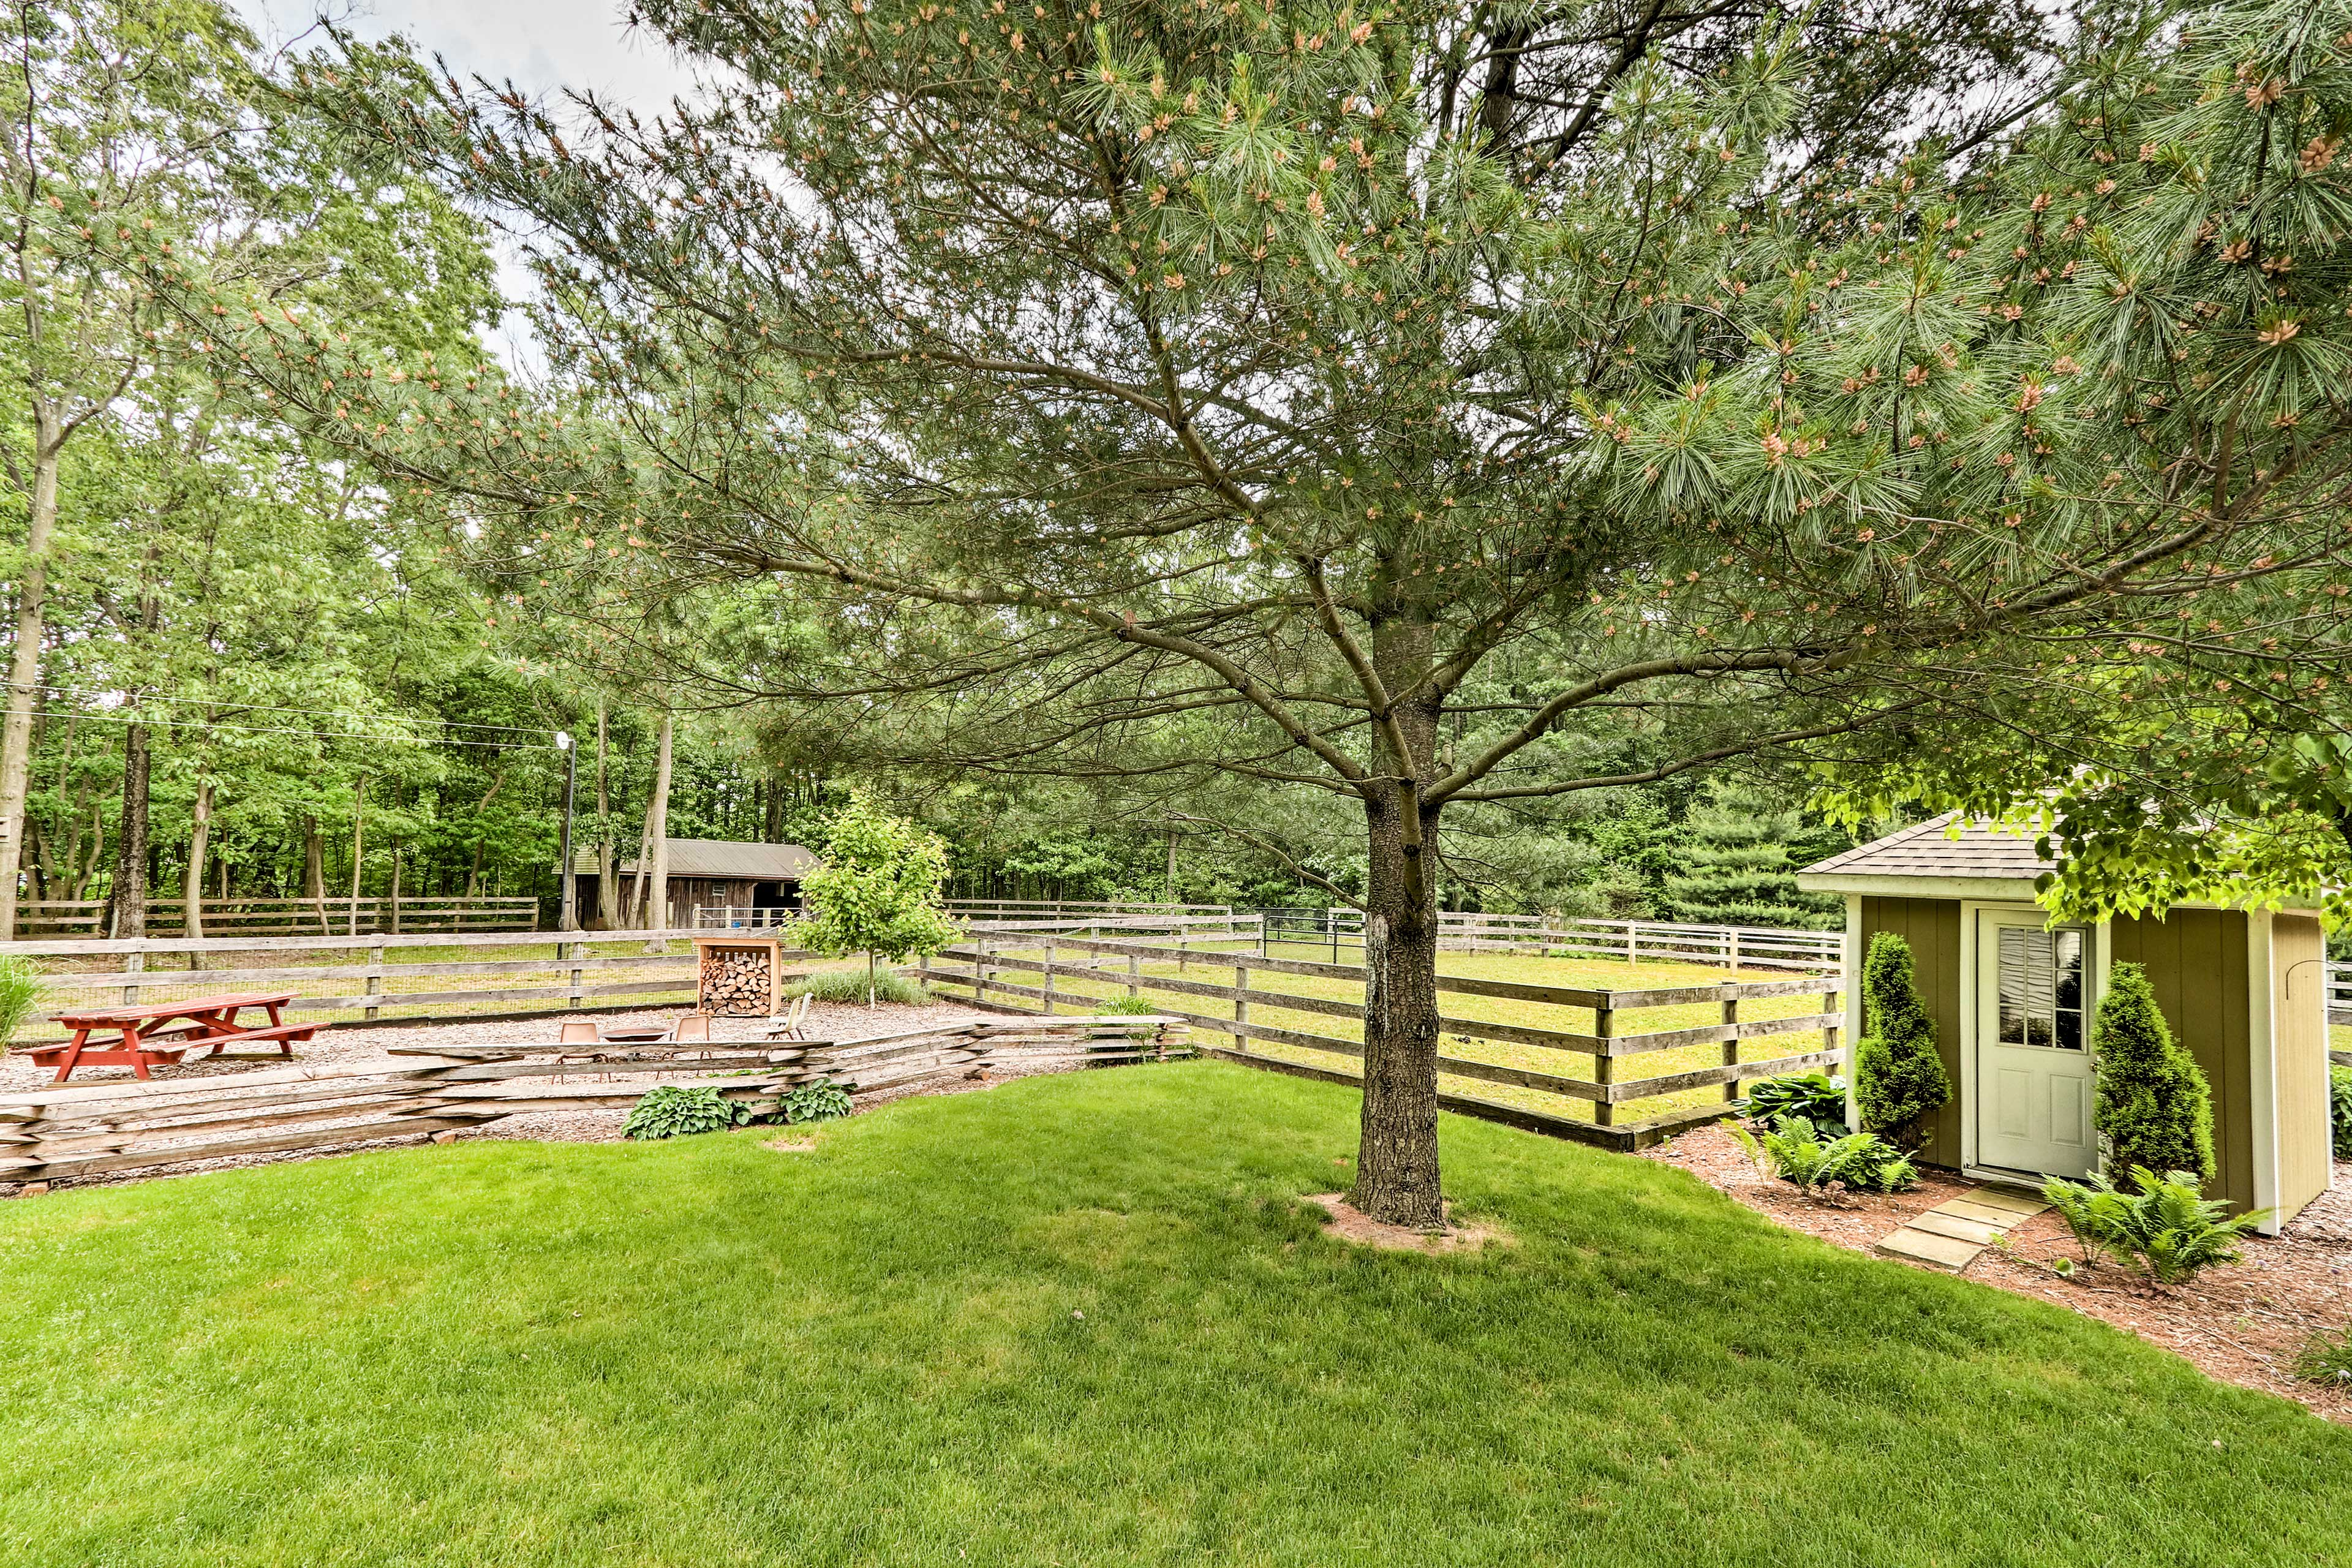 The home features a fire pit and picnic area.